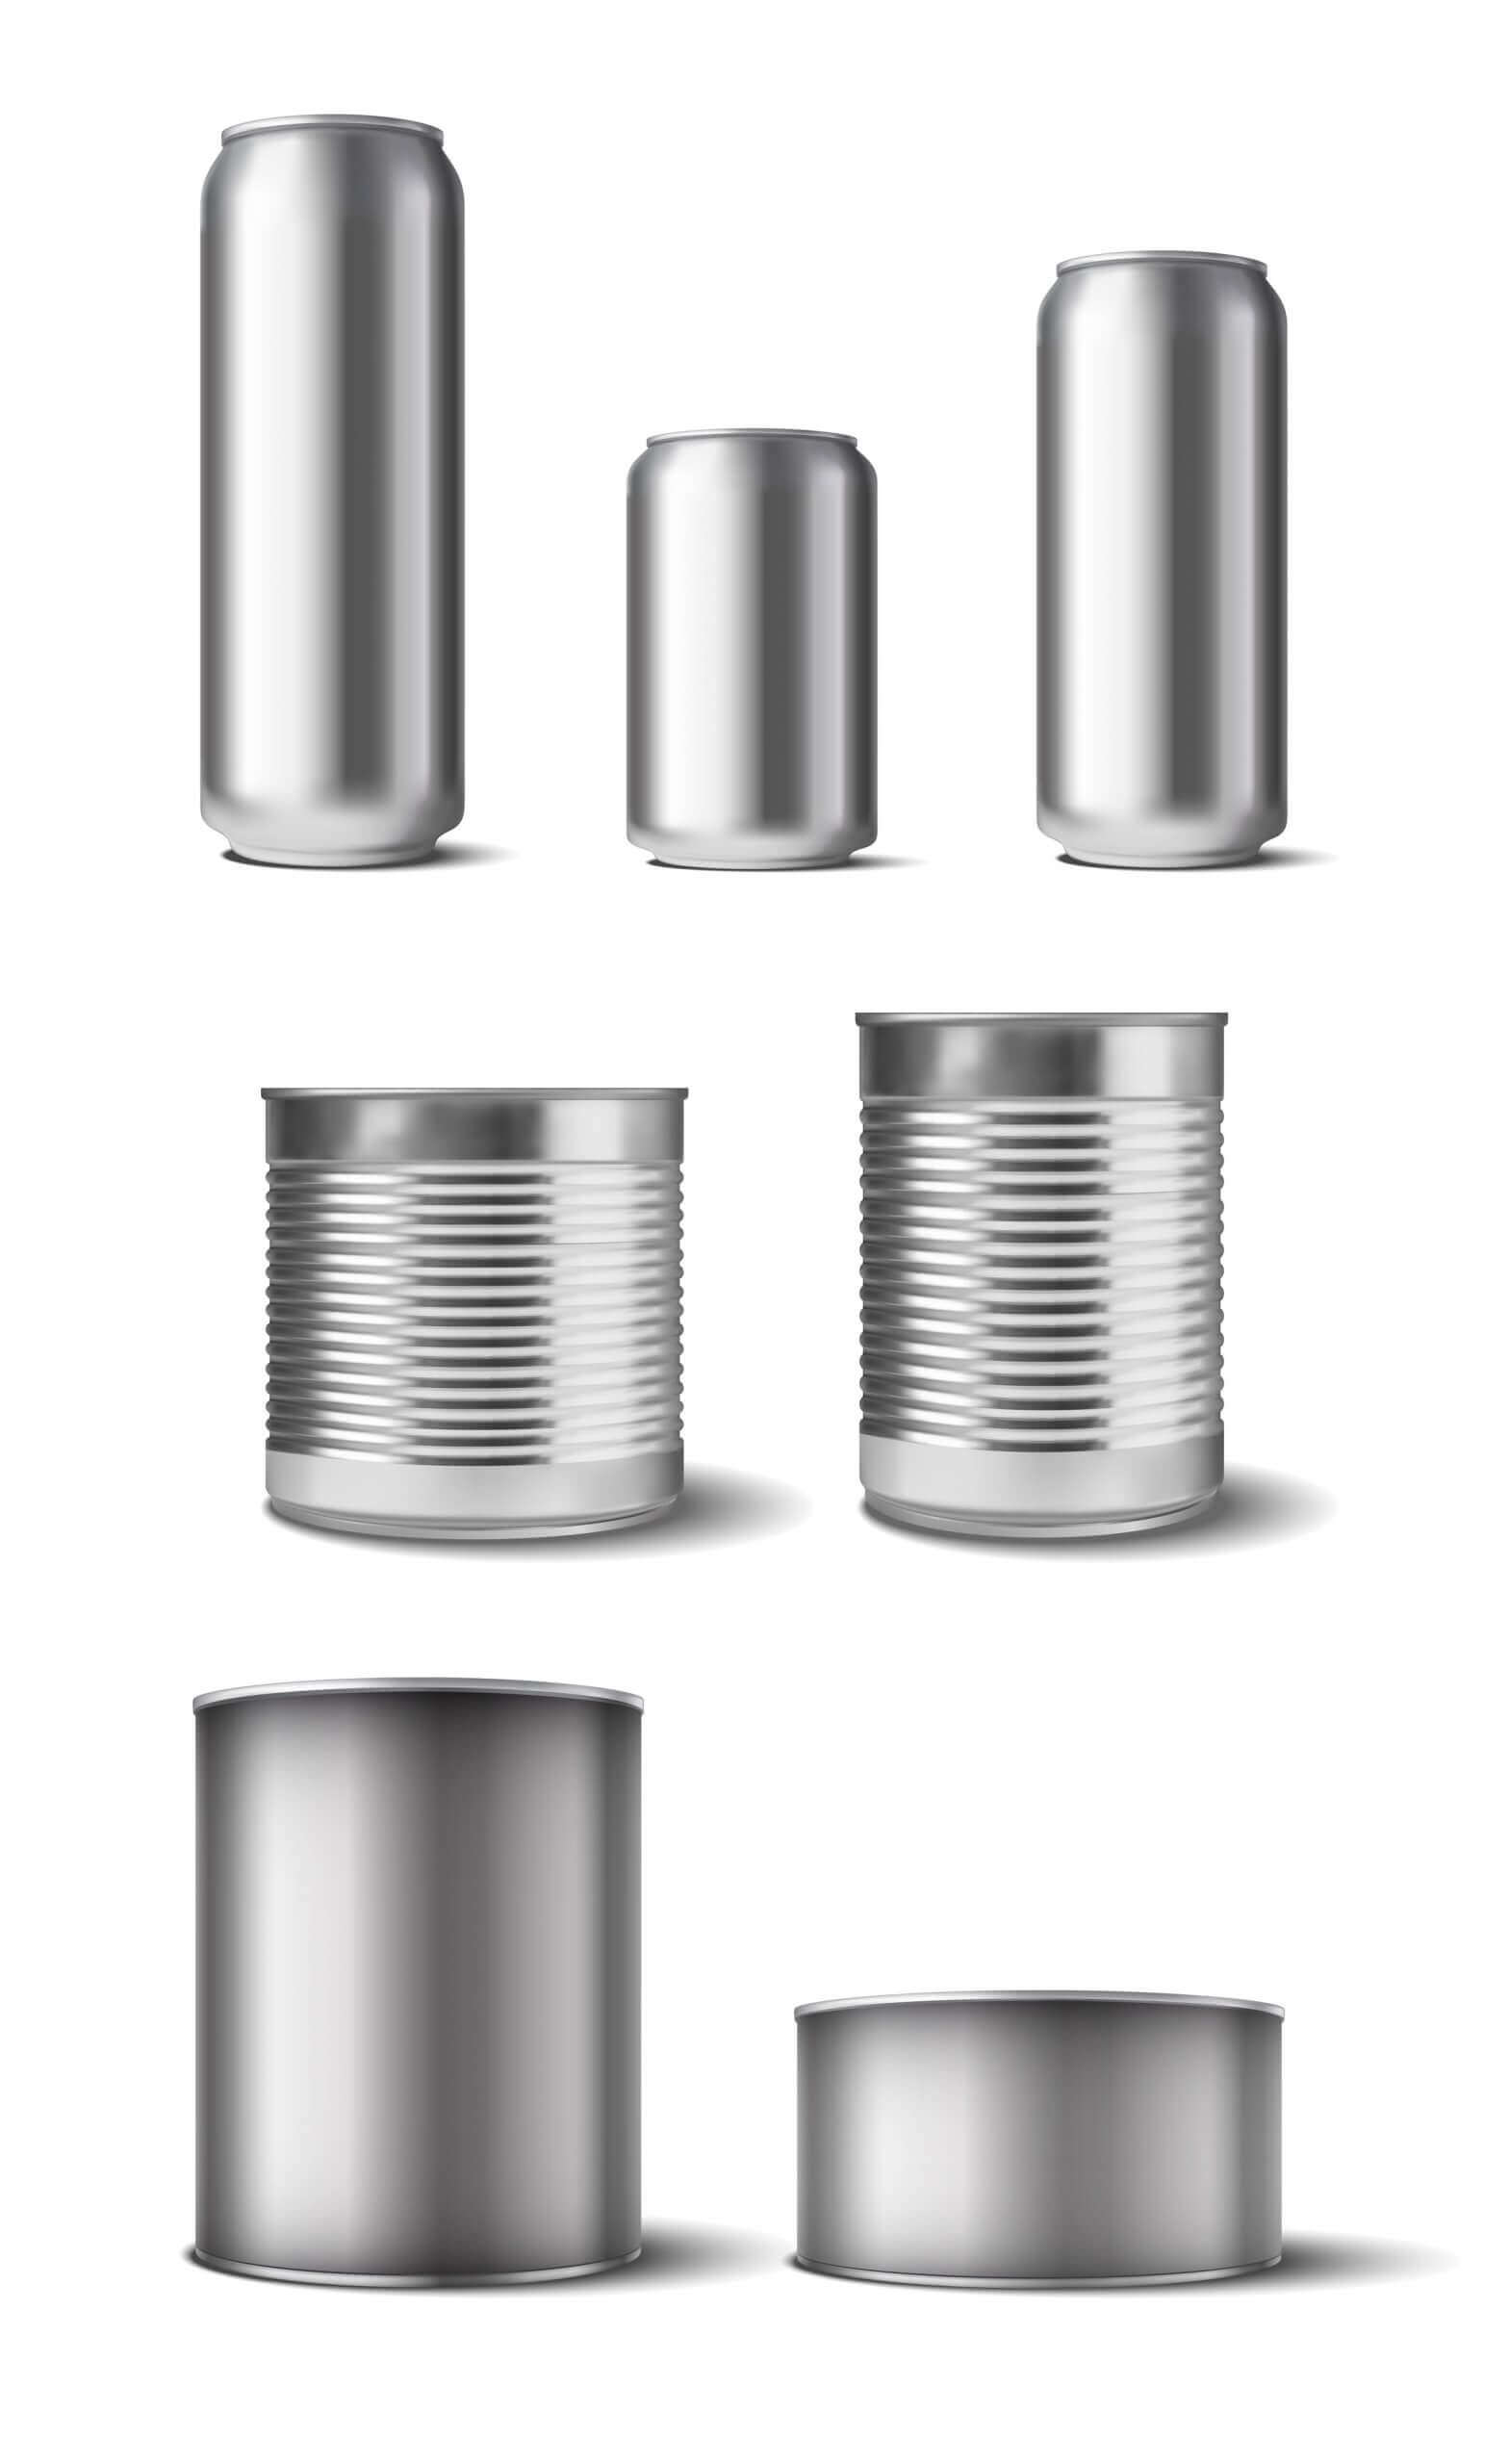 Overview of types of cans that can be drained with PUEHLER machines